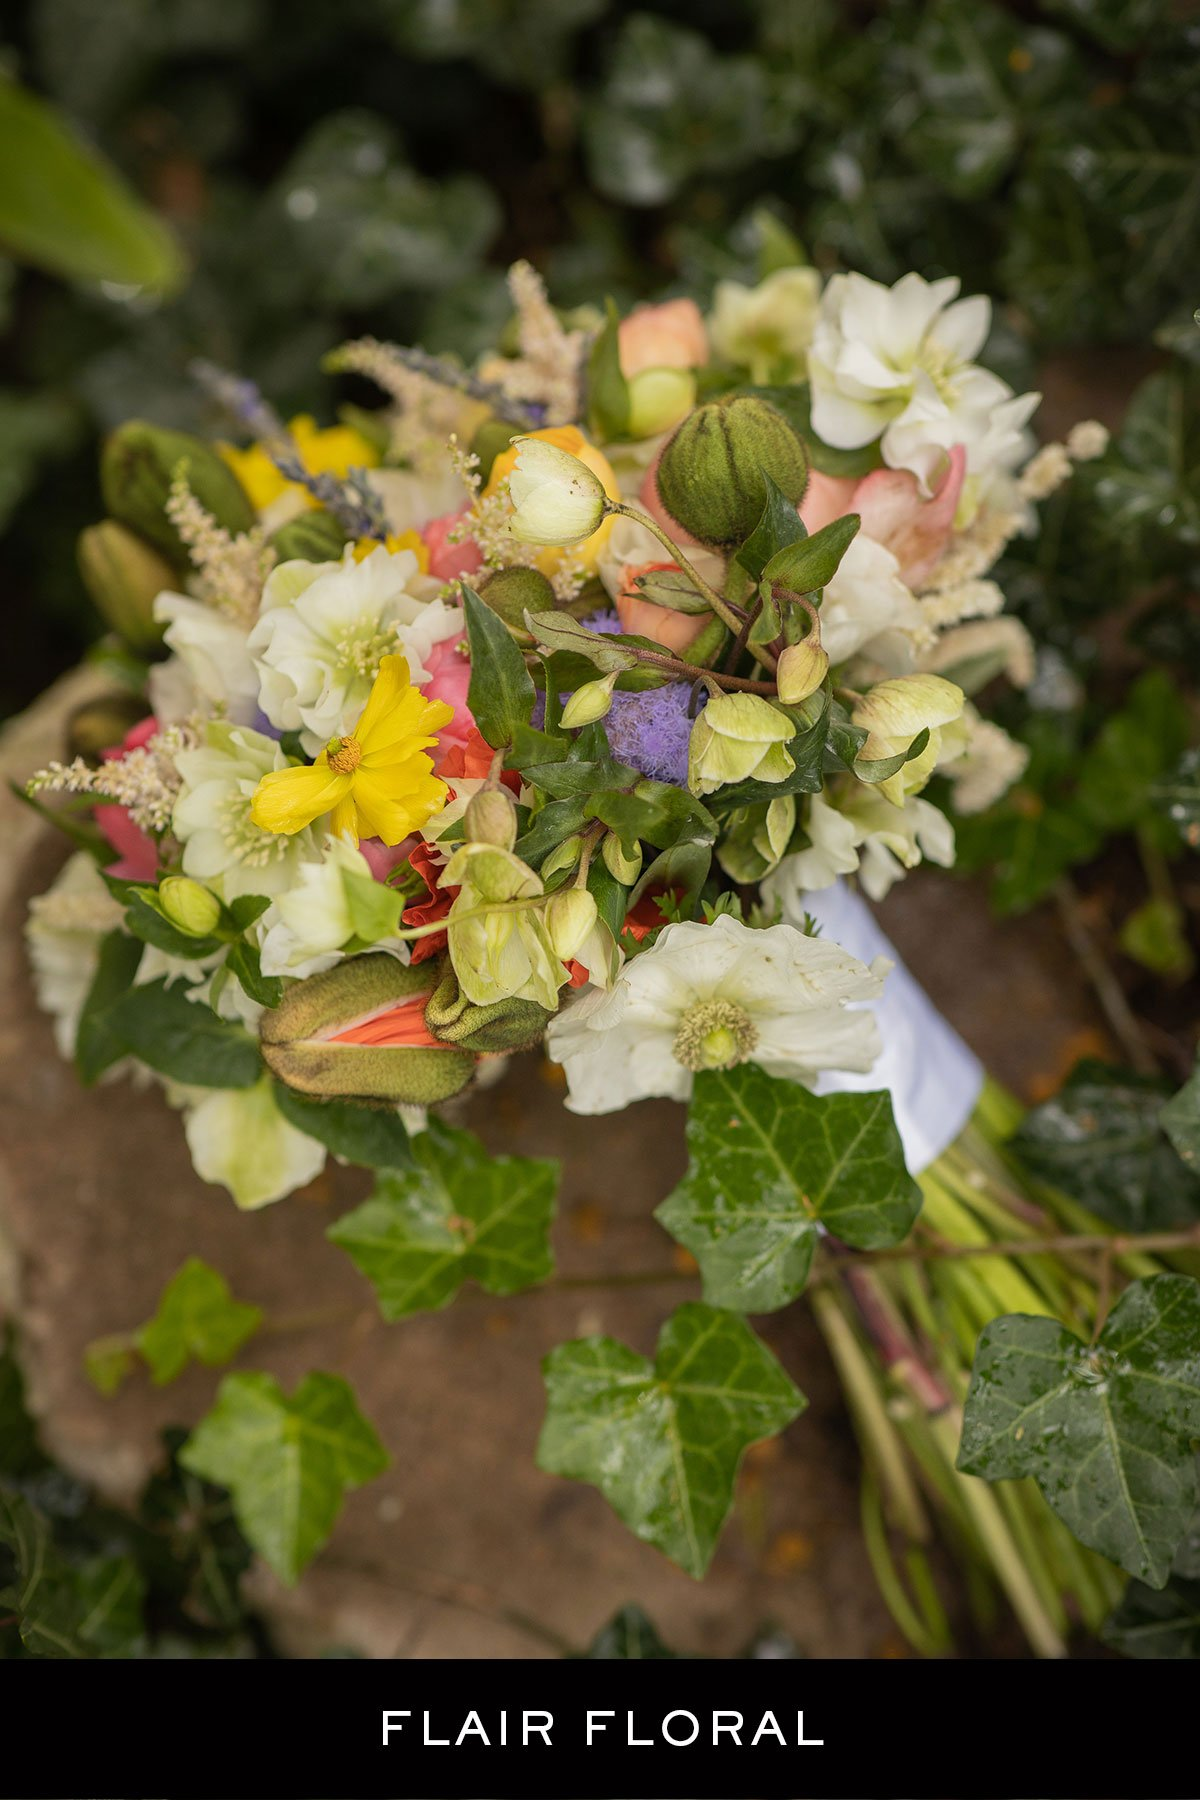 Flair-floral-Boquet-Shoot-San-Antonio-Weddings-2020-MainC